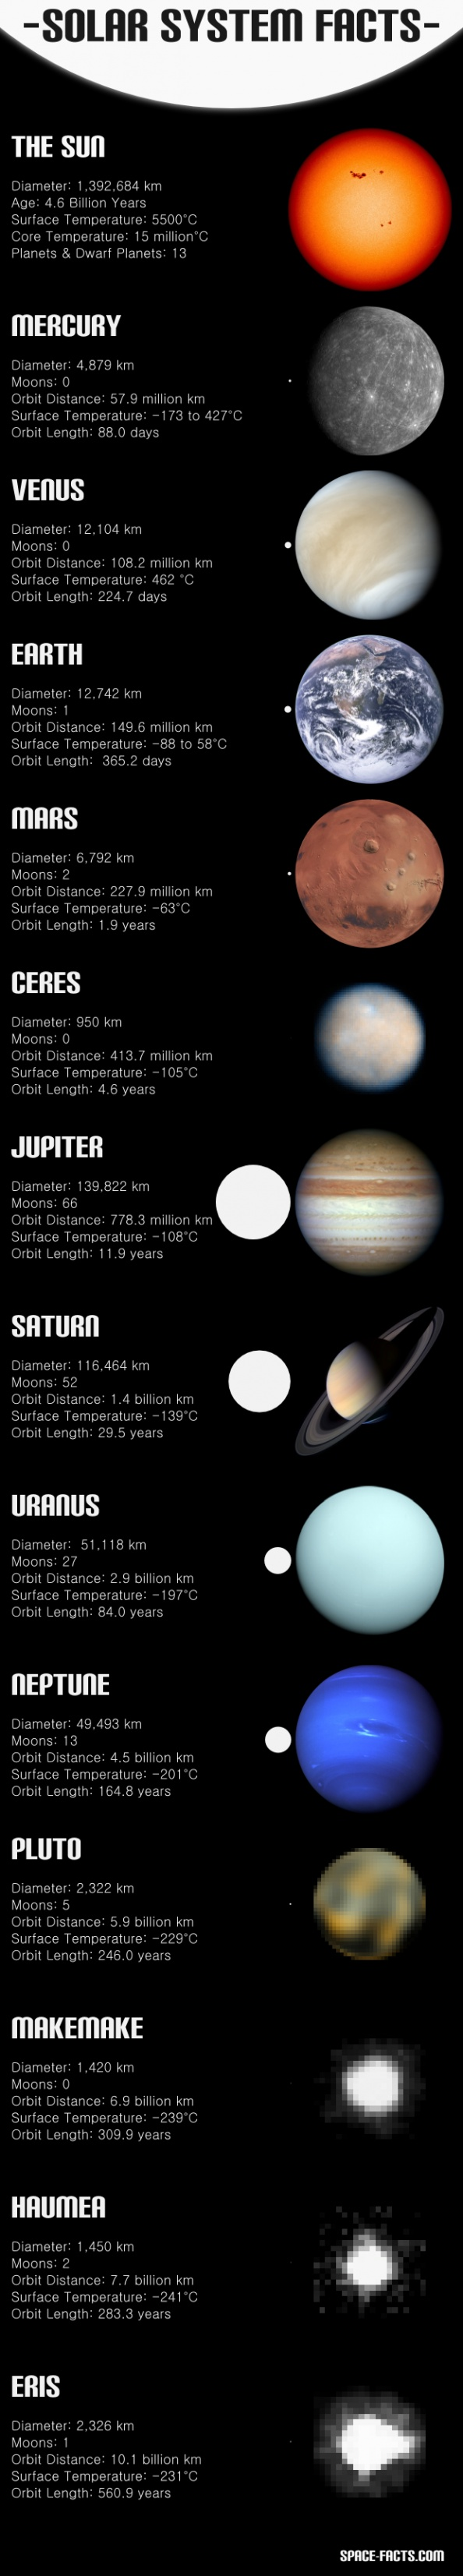 Solar System Facts - #Infographic | Infografiche ...